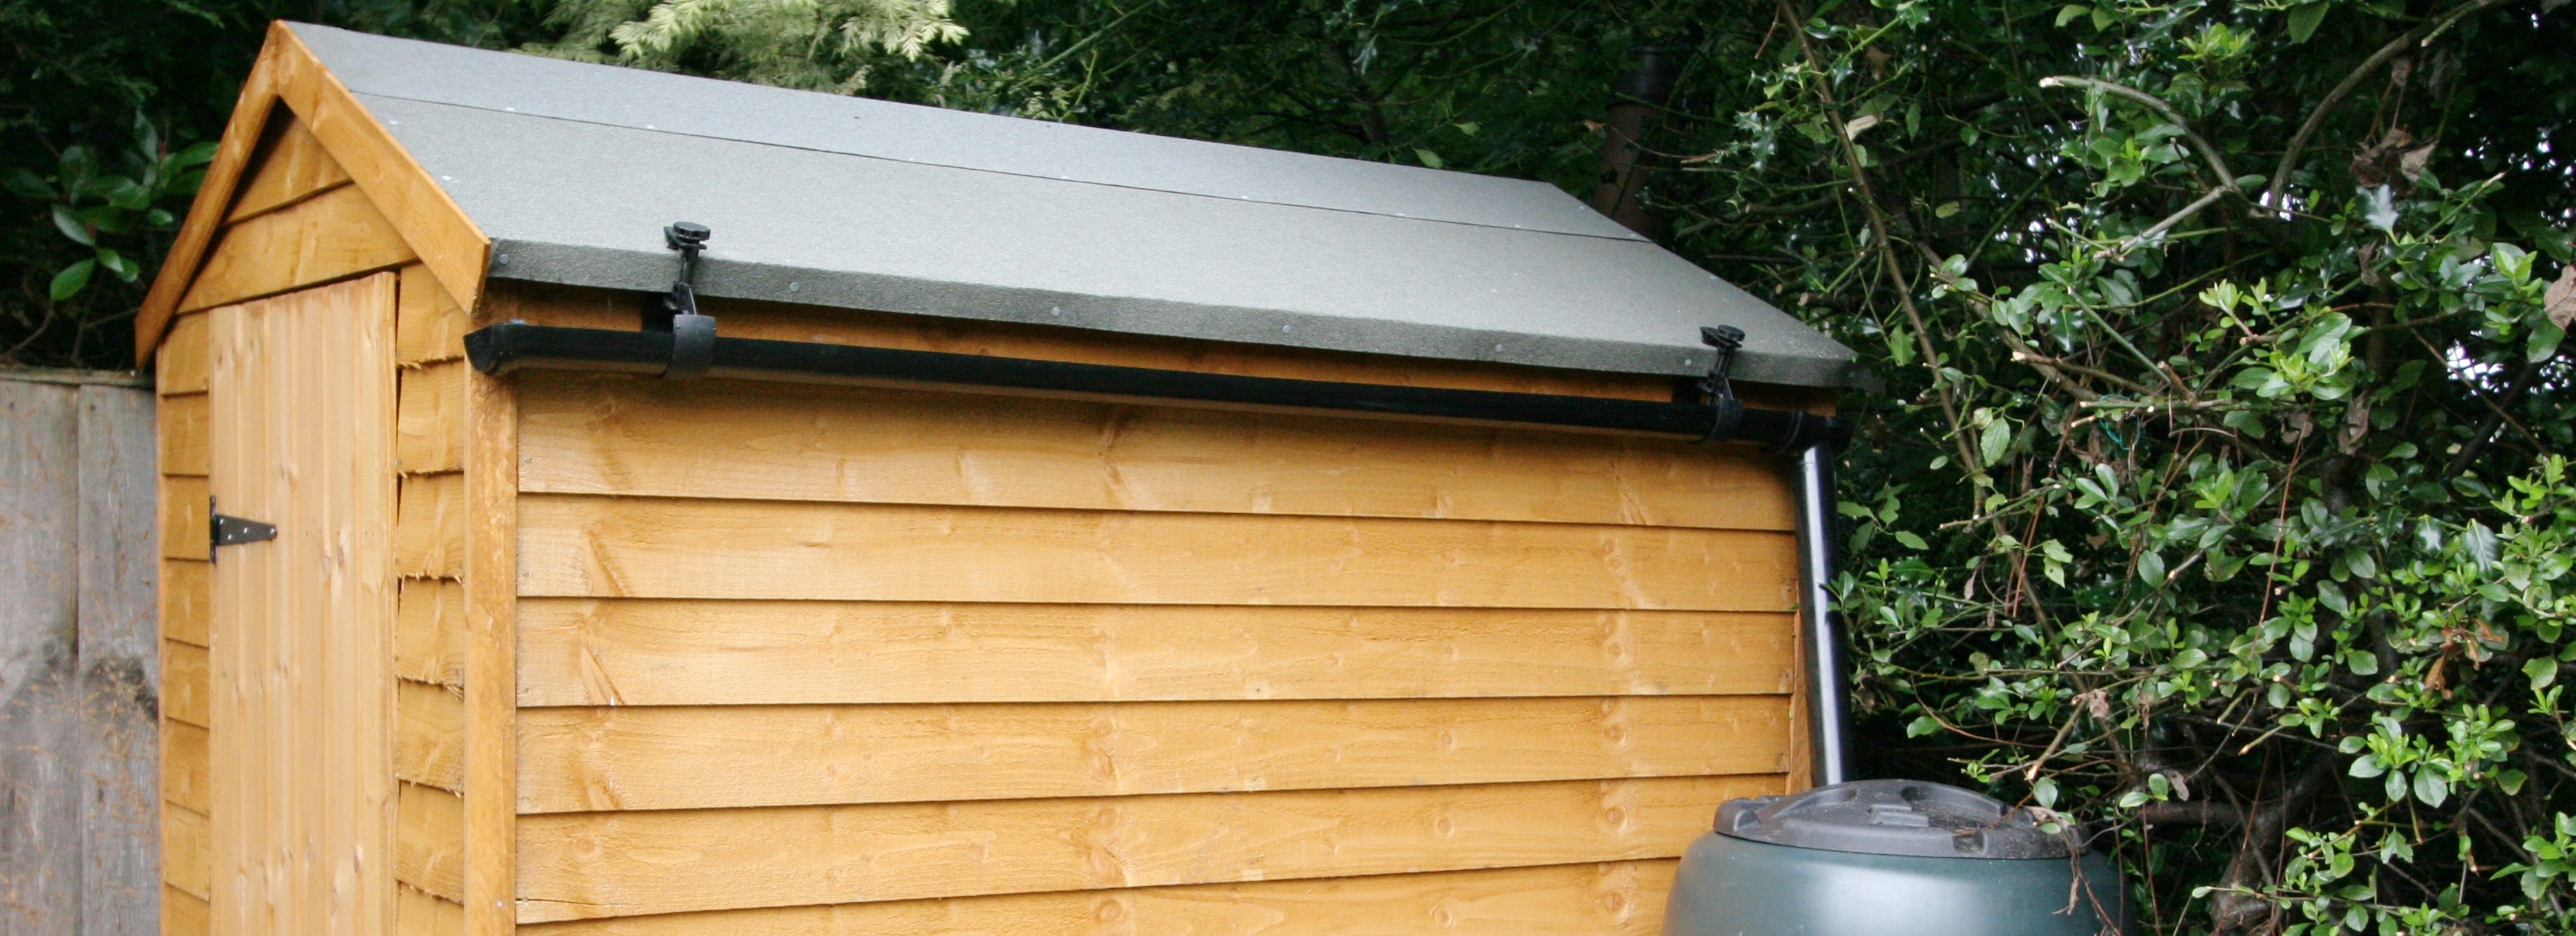 how to install rain gutters on a metal building